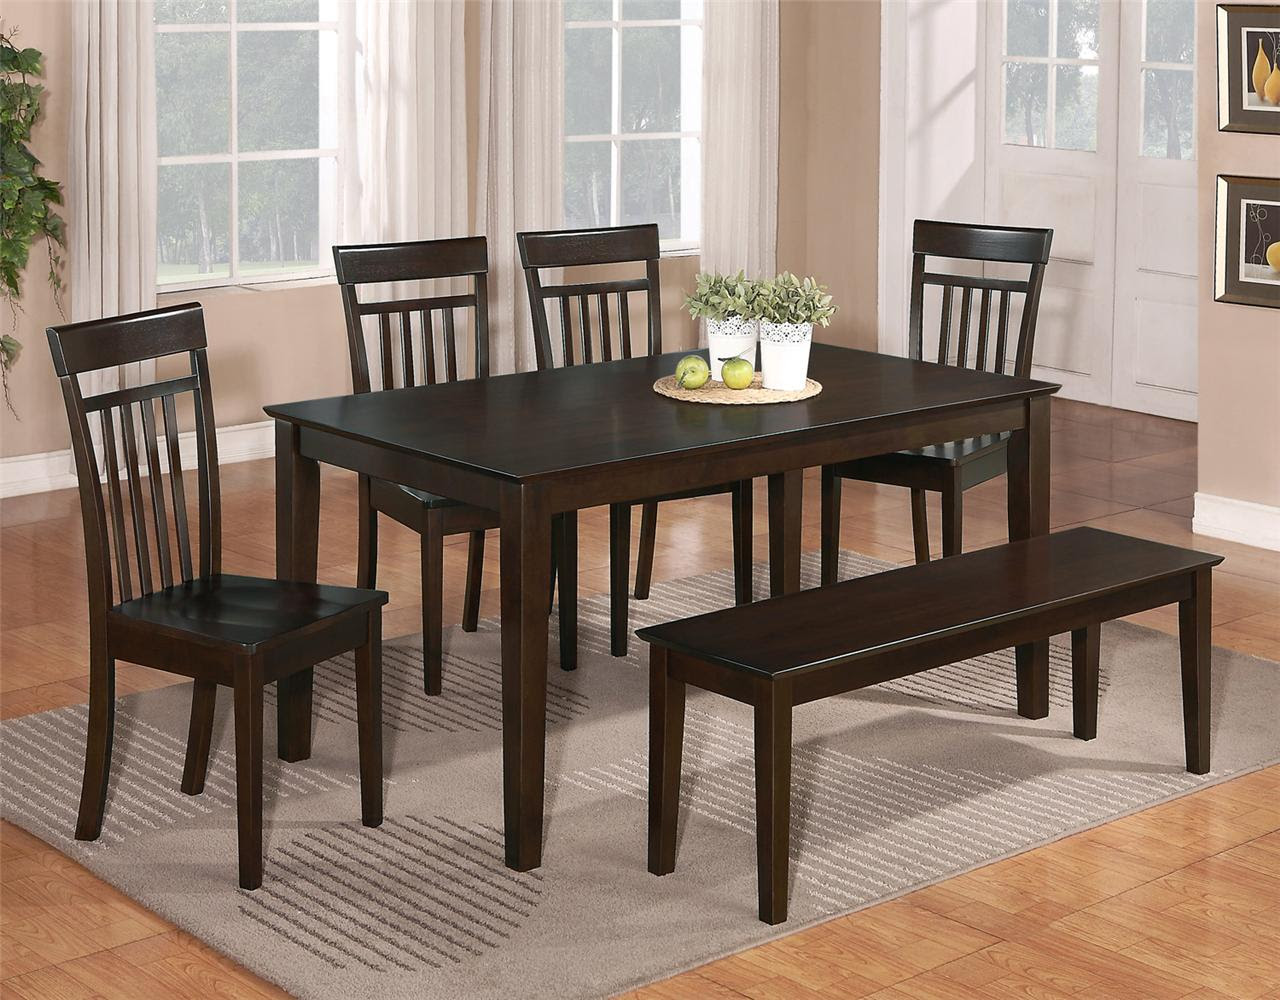 6 PC DINETTE KITCHEN DINING ROOM SET TABLE w\/4 WOOD CHAIR and 1 BENCH CAPPUCCINO  eBay